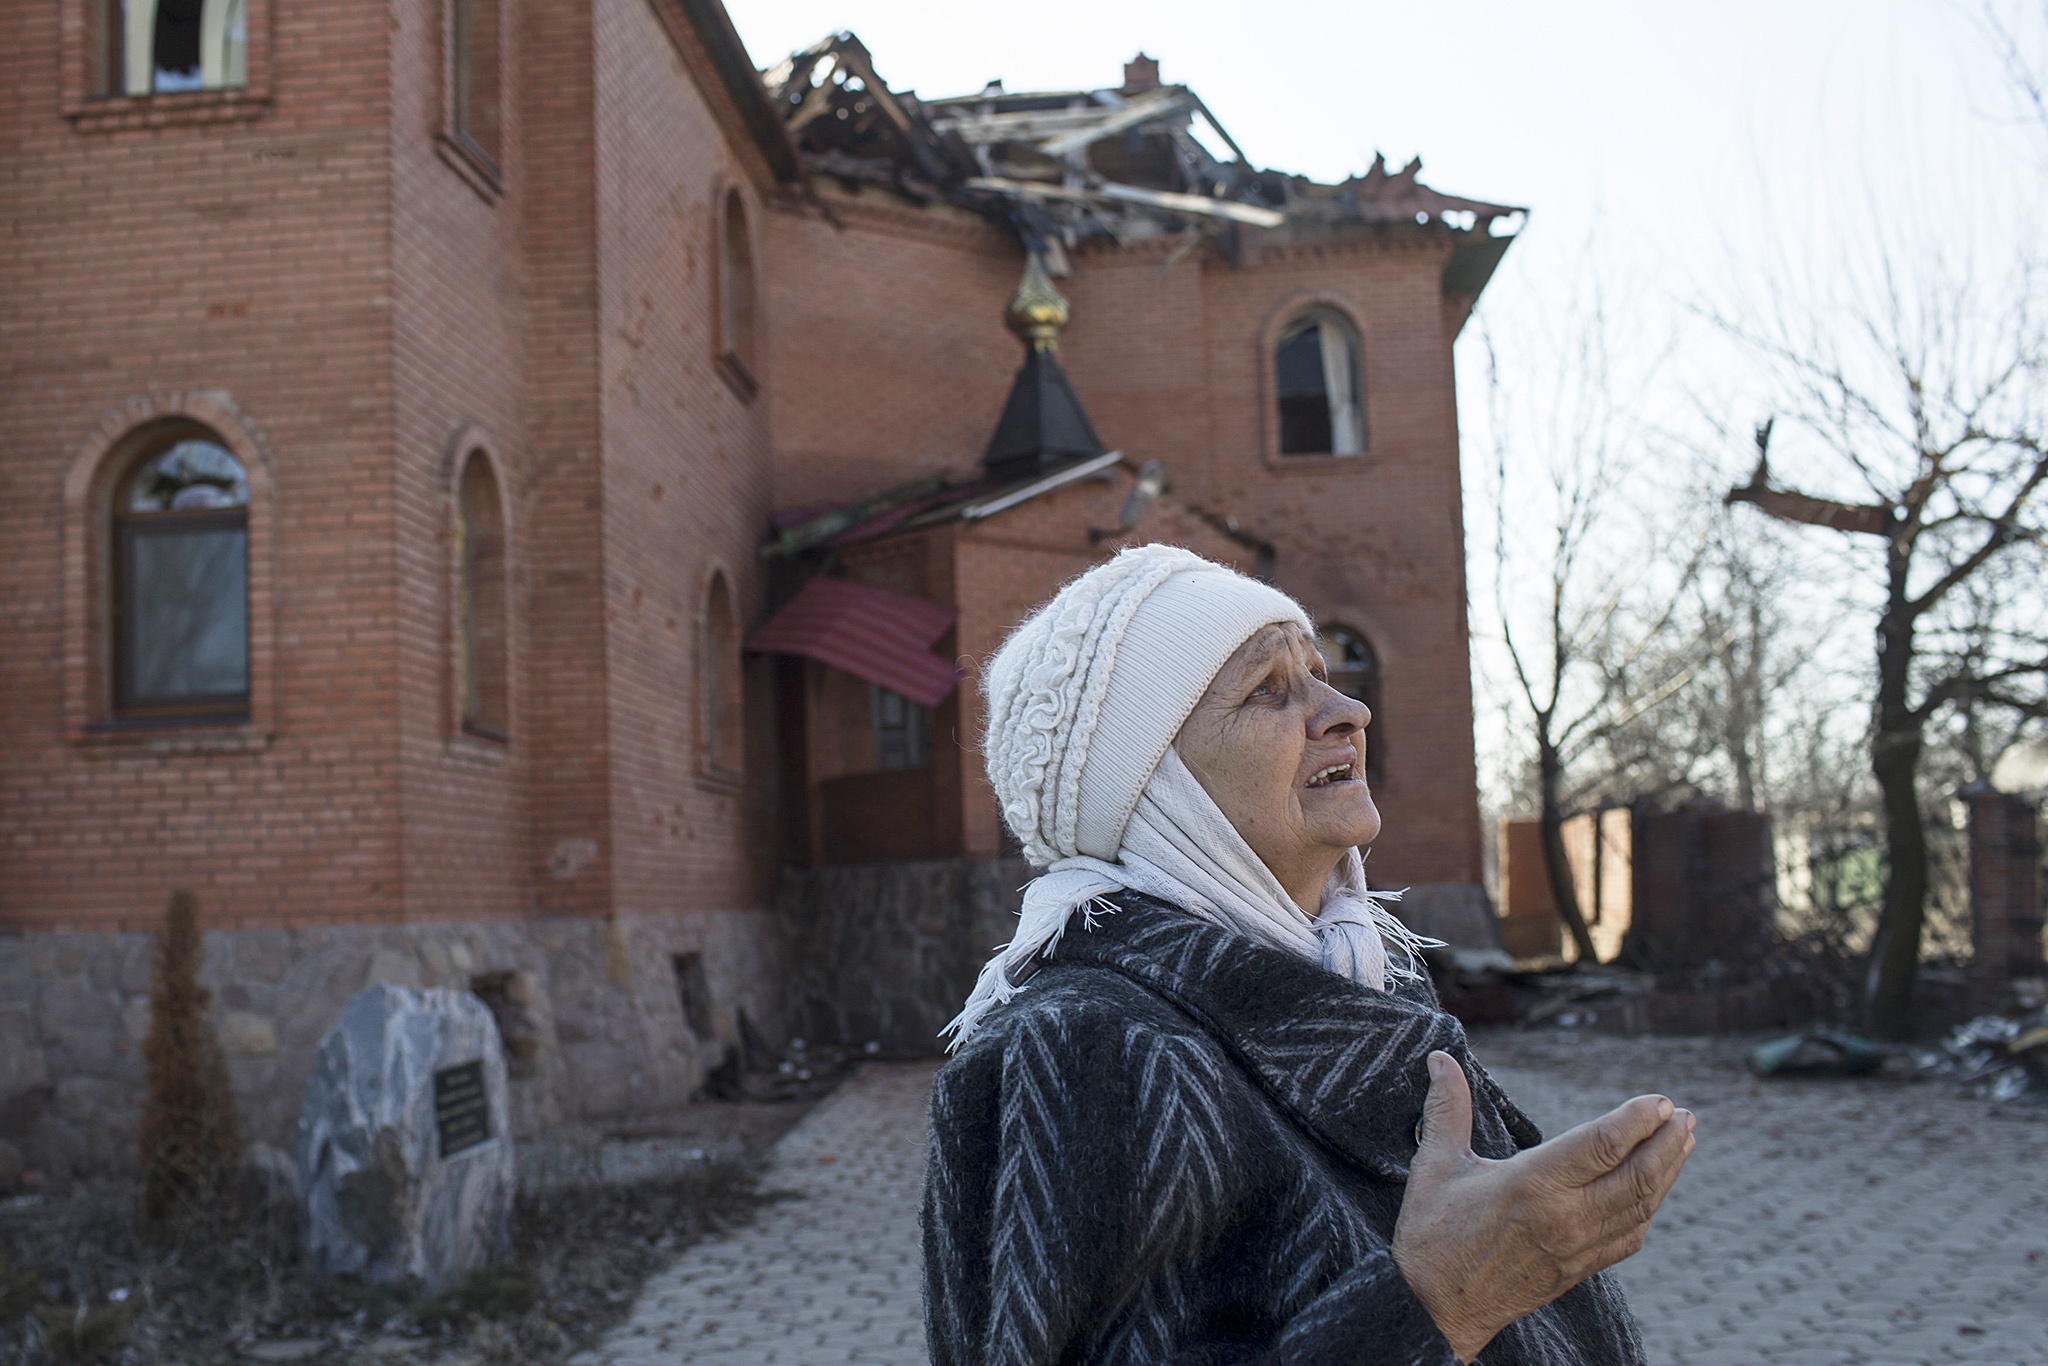 A woman reacts as she looks at a damaged church in Donetsk's Oktyabrski district...A woman reacts as she looks at a damaged church in Donetsk's Oktyabrski district, March 9, 2015. REUTERS/Marko Djurica (UKRAINE - Tags: POLITICS CIVIL UNREST CONFLICT)A woman reacts as she looks at a damaged church in Donetsk's Oktyabrski district...A woman reacts as she looks at a damaged church in Donetsk's Oktyabrski district, March 9, 2015. REUTERS/Marko Djurica (UKRAINE - Tags: POLITICS CIVIL UNREST CONFLICT)